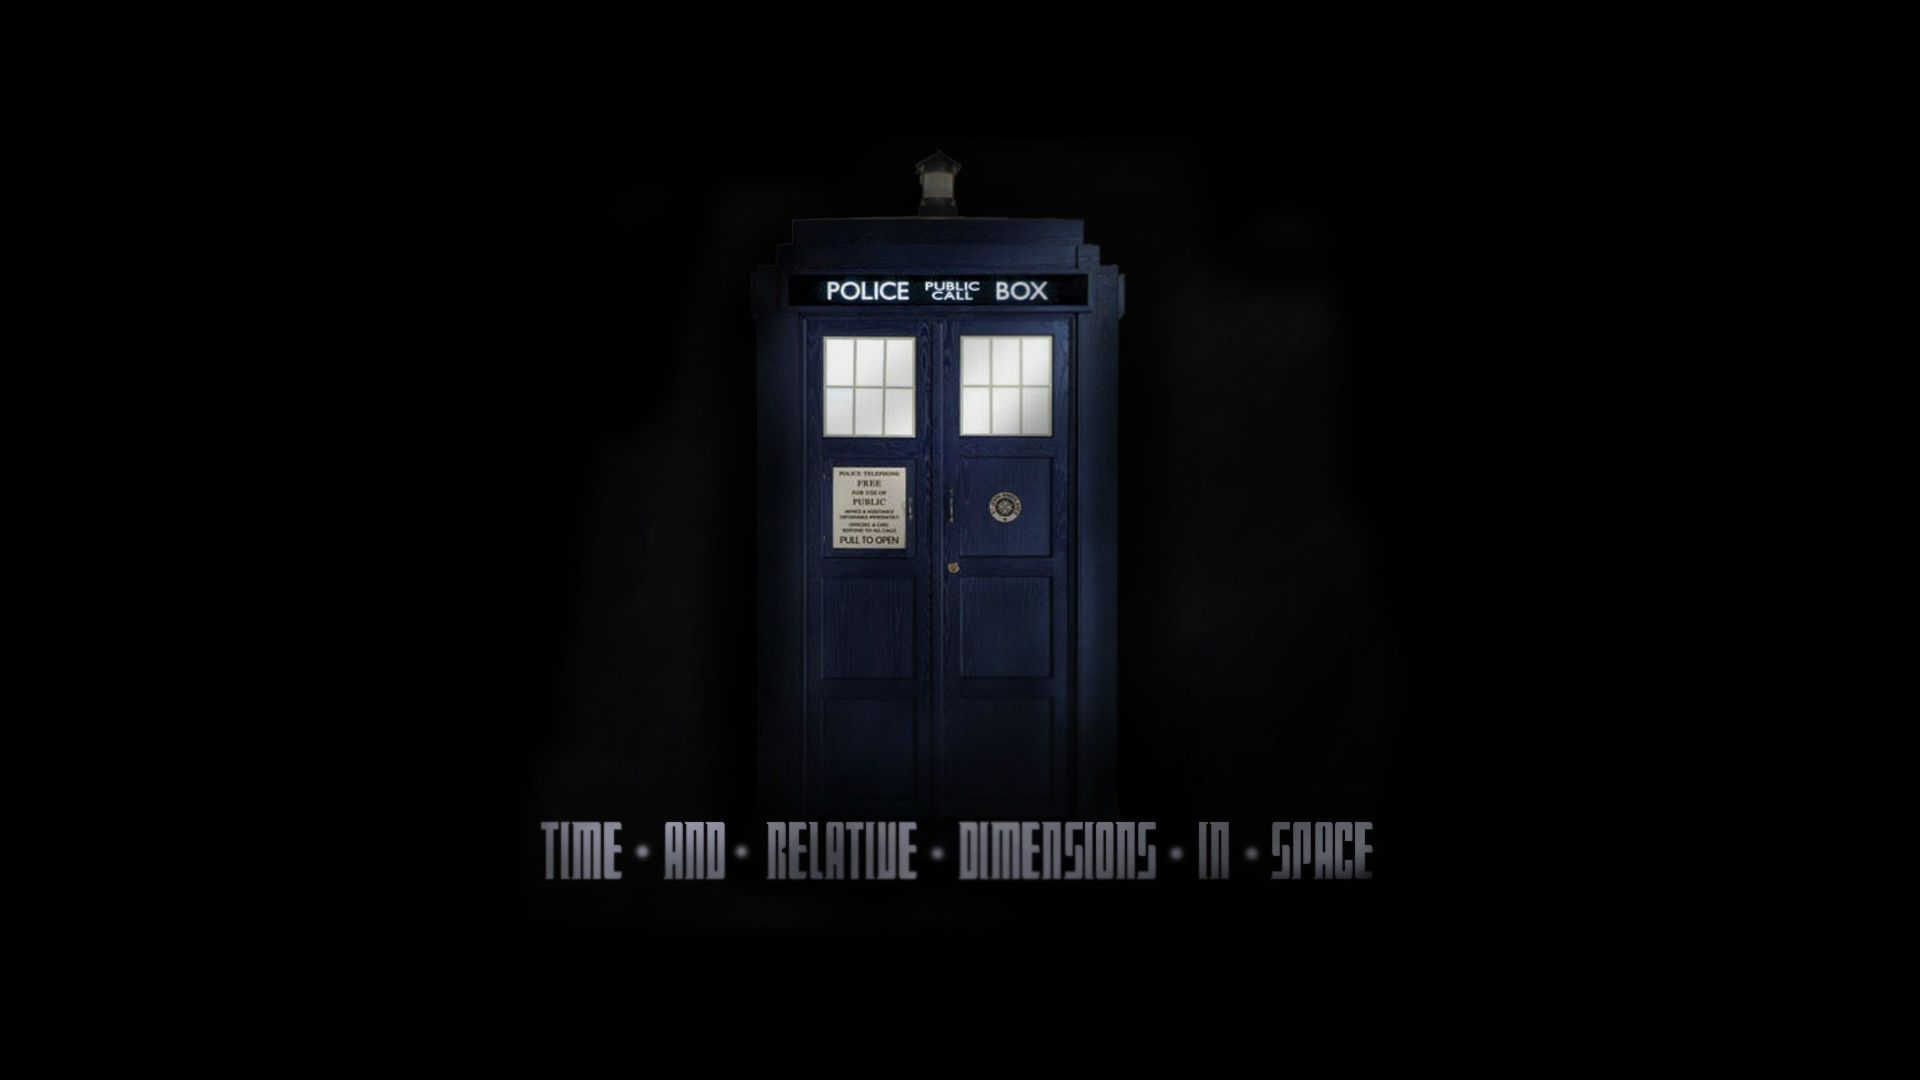 Doctor who wallpapers HD A13 - Dr Who Wallpapers | Doctor who backgrounds | doctor who tardis wallpapers | Doctor who desktop wallpapers | doctor who phone wallpapers.